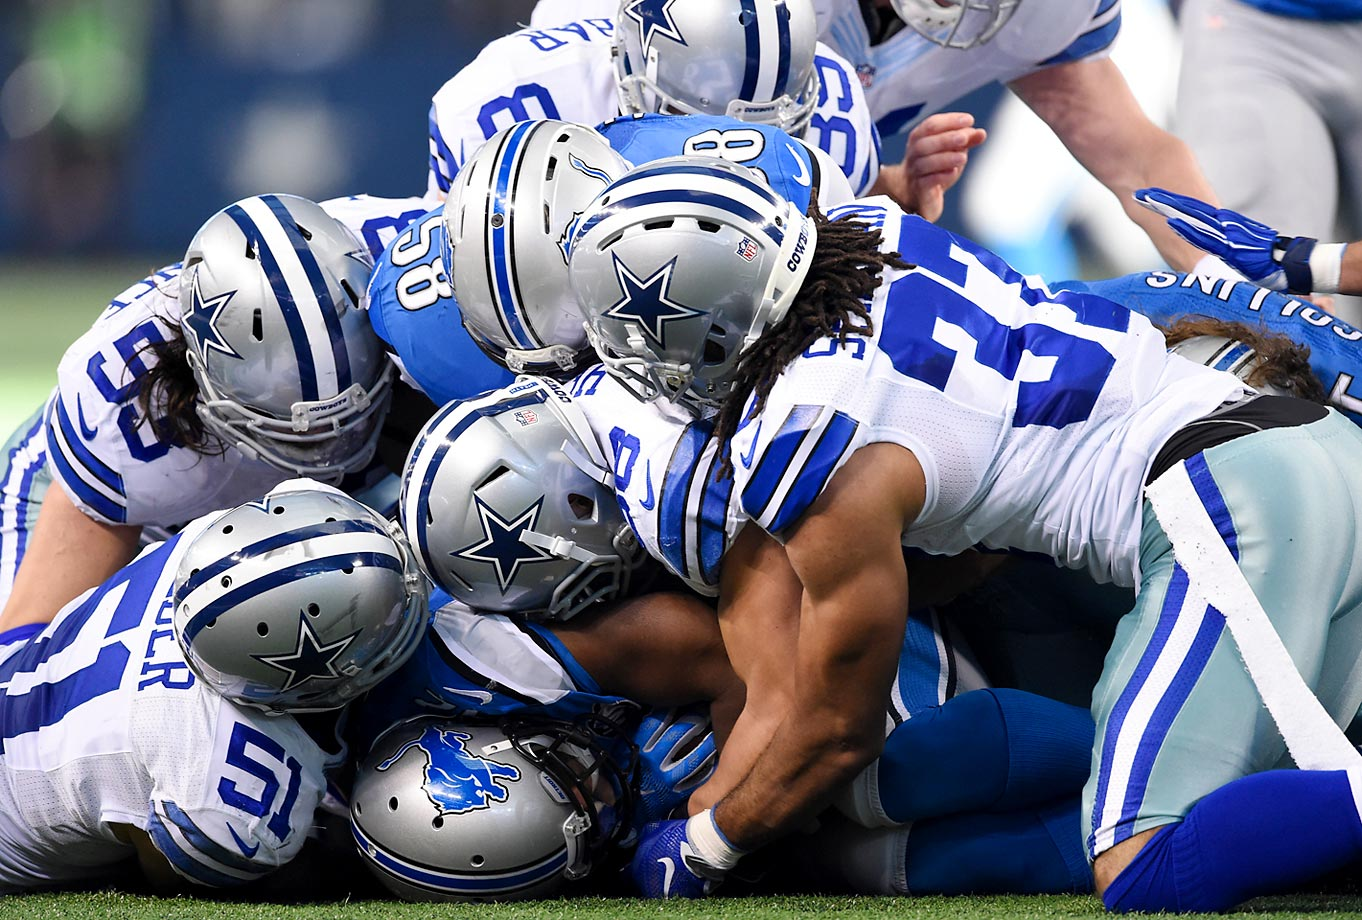 A passel of Cowboys special-teamers -- Kyle Wilber (51), Cameron Lawrence (53), Jeff Heath (38) and C.J. Spillman (37) -- delivered some muff justice to Lions return man Jeremy Ross as he fell on the ball after bobbling a second-quarter punt.